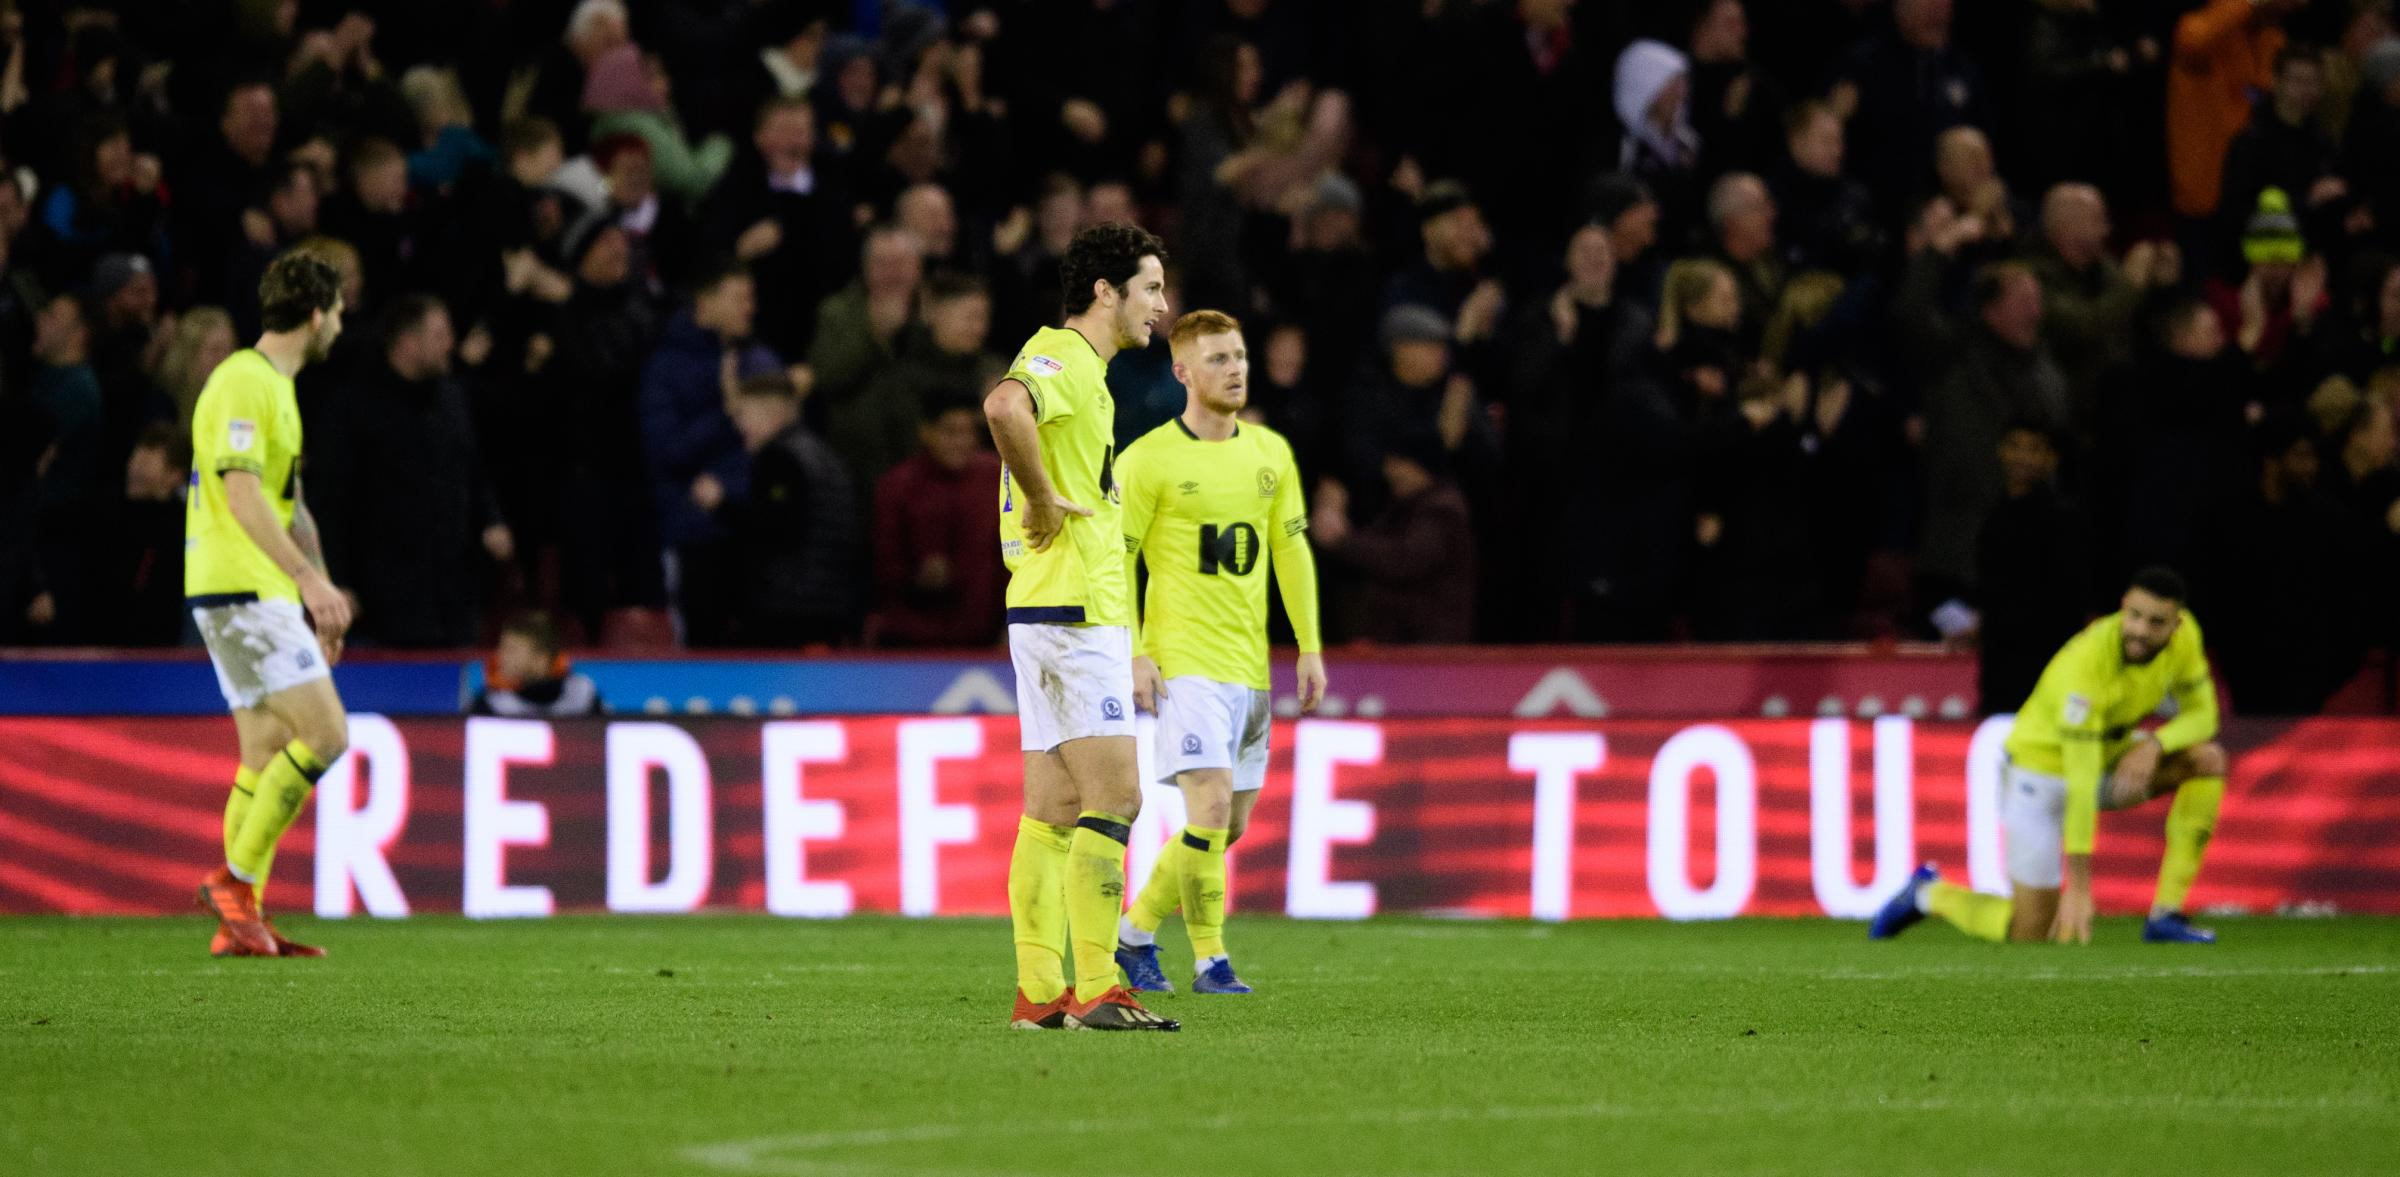 Rovers were beaten 3-0 at Sheffield United in their last away match